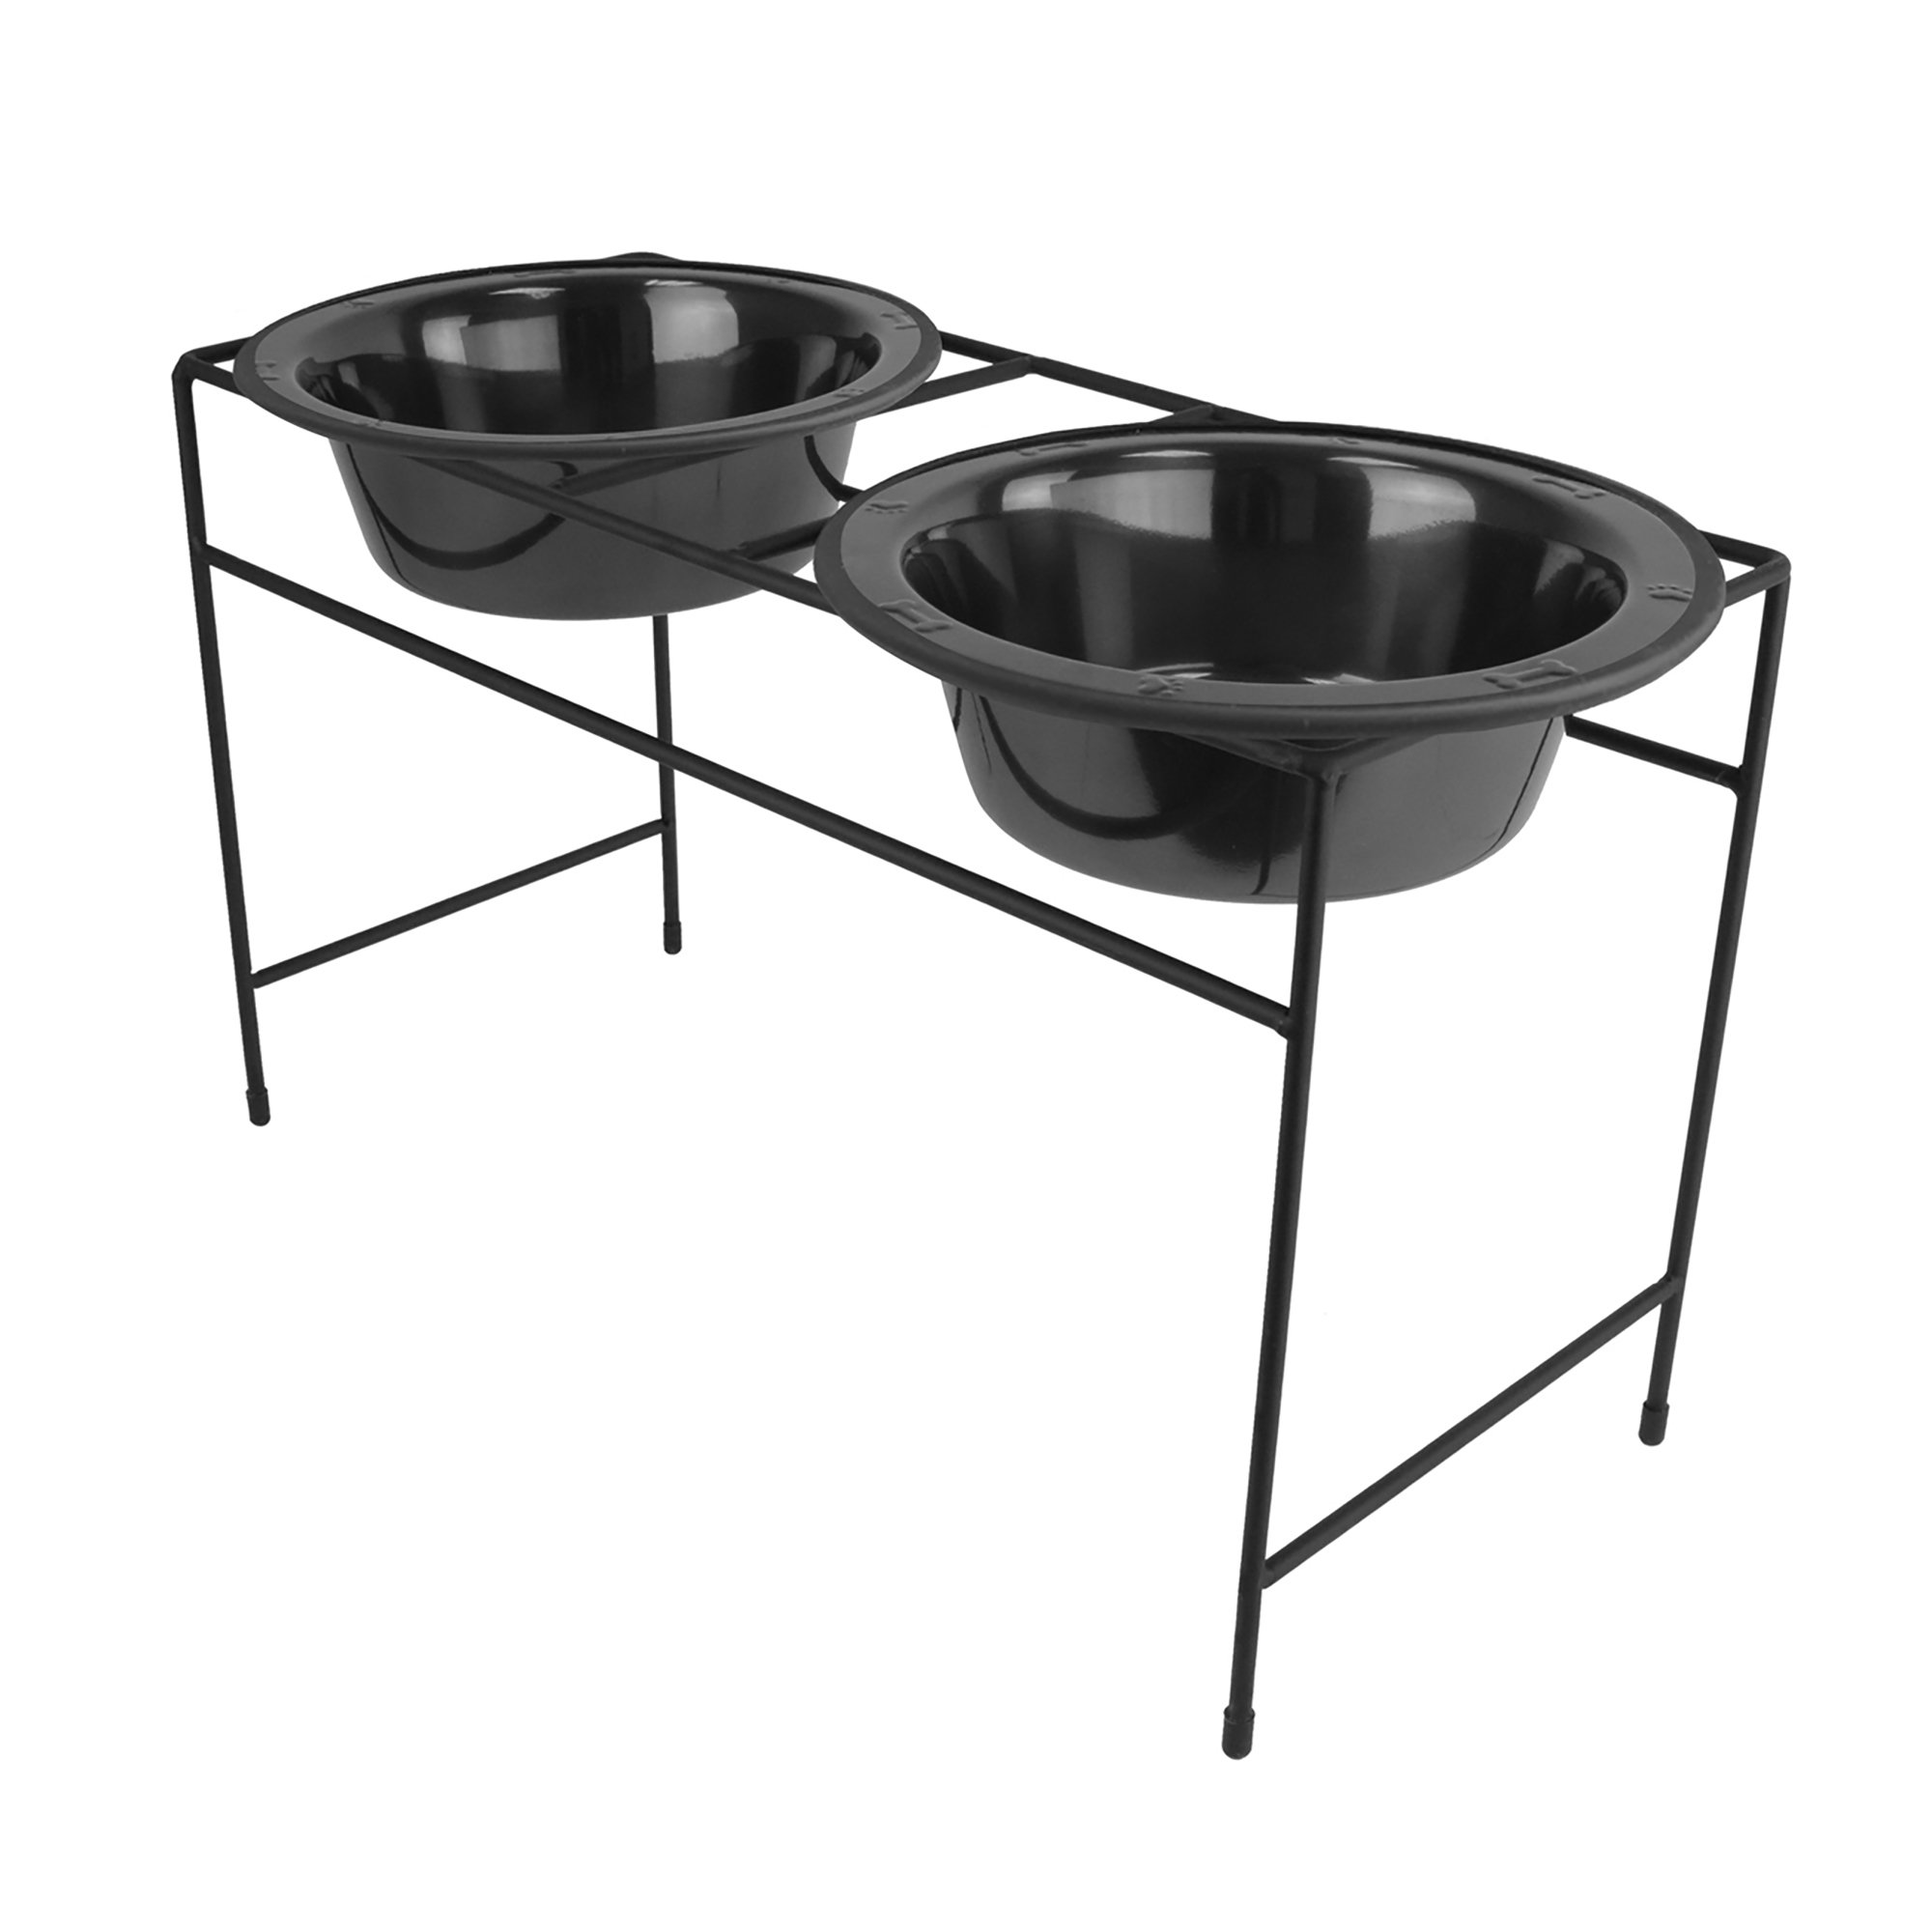 Platinum Pets Double Diner Feeder with Stainless Steel Dog Bowls, 6.25 cup/50 oz, Black Chrome